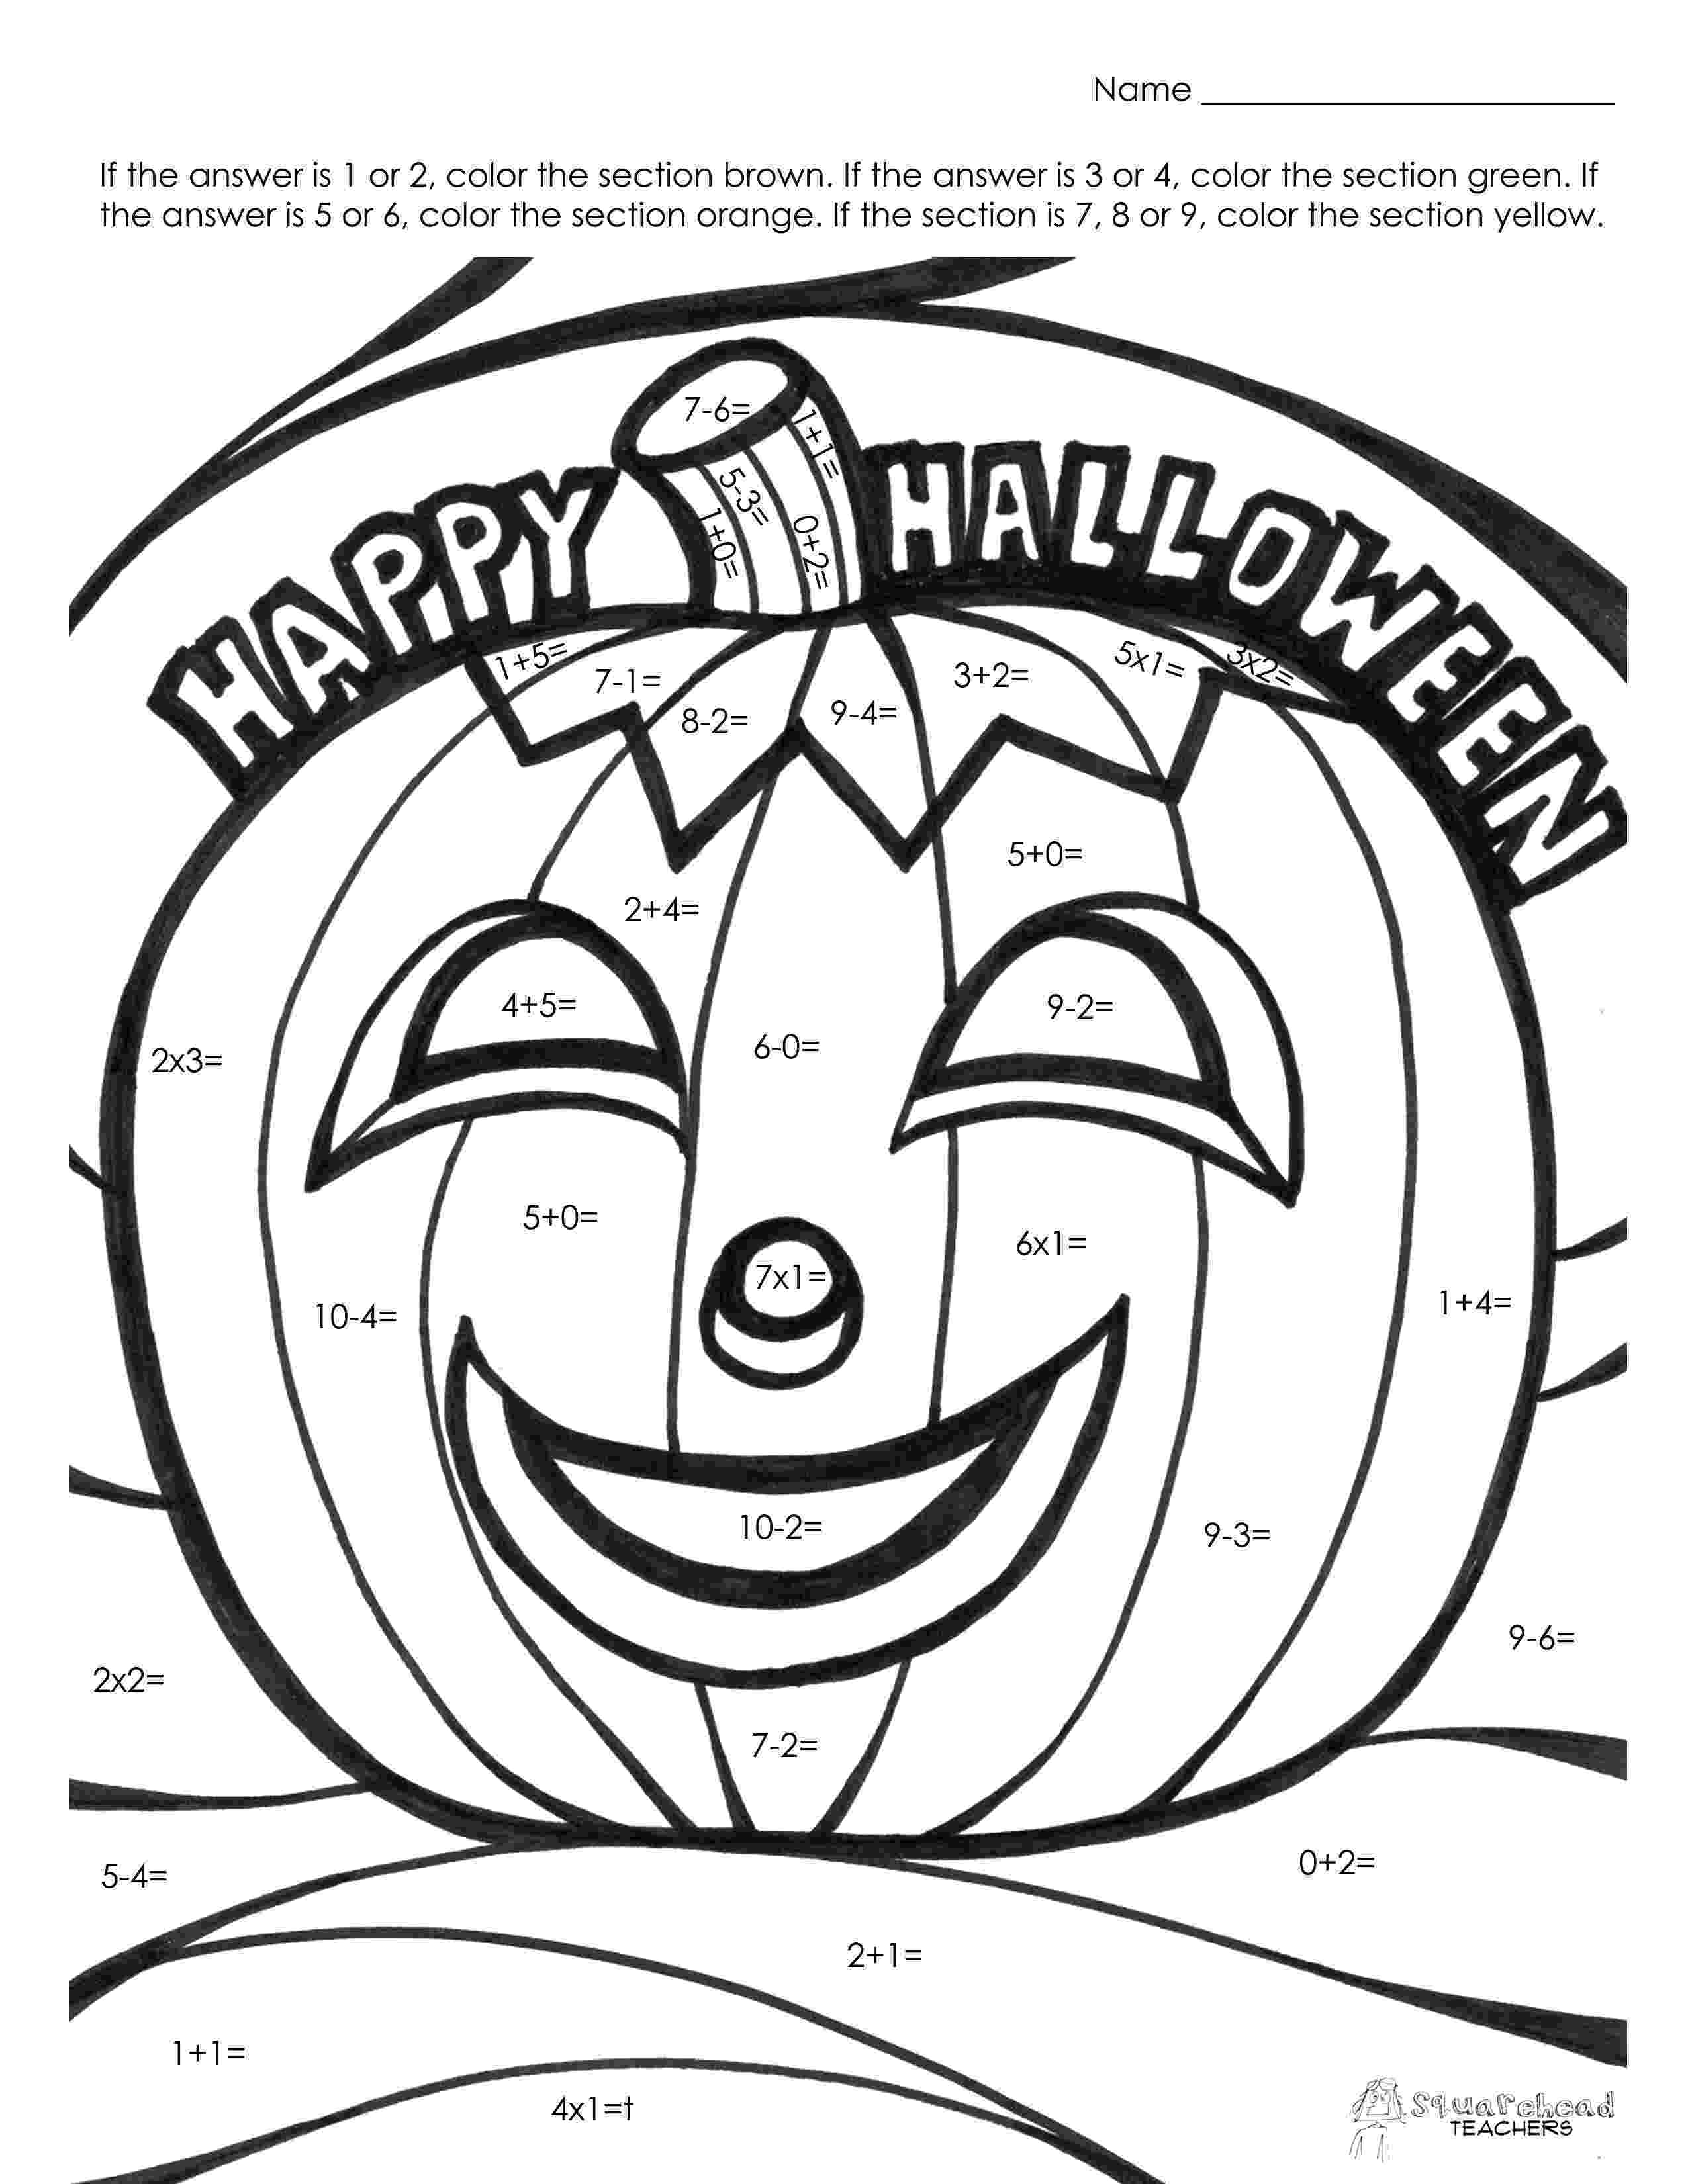 3rd grade coloring pages hello 3rd grade 3rd grade coloring page wecoloringpagecom grade coloring 3rd pages